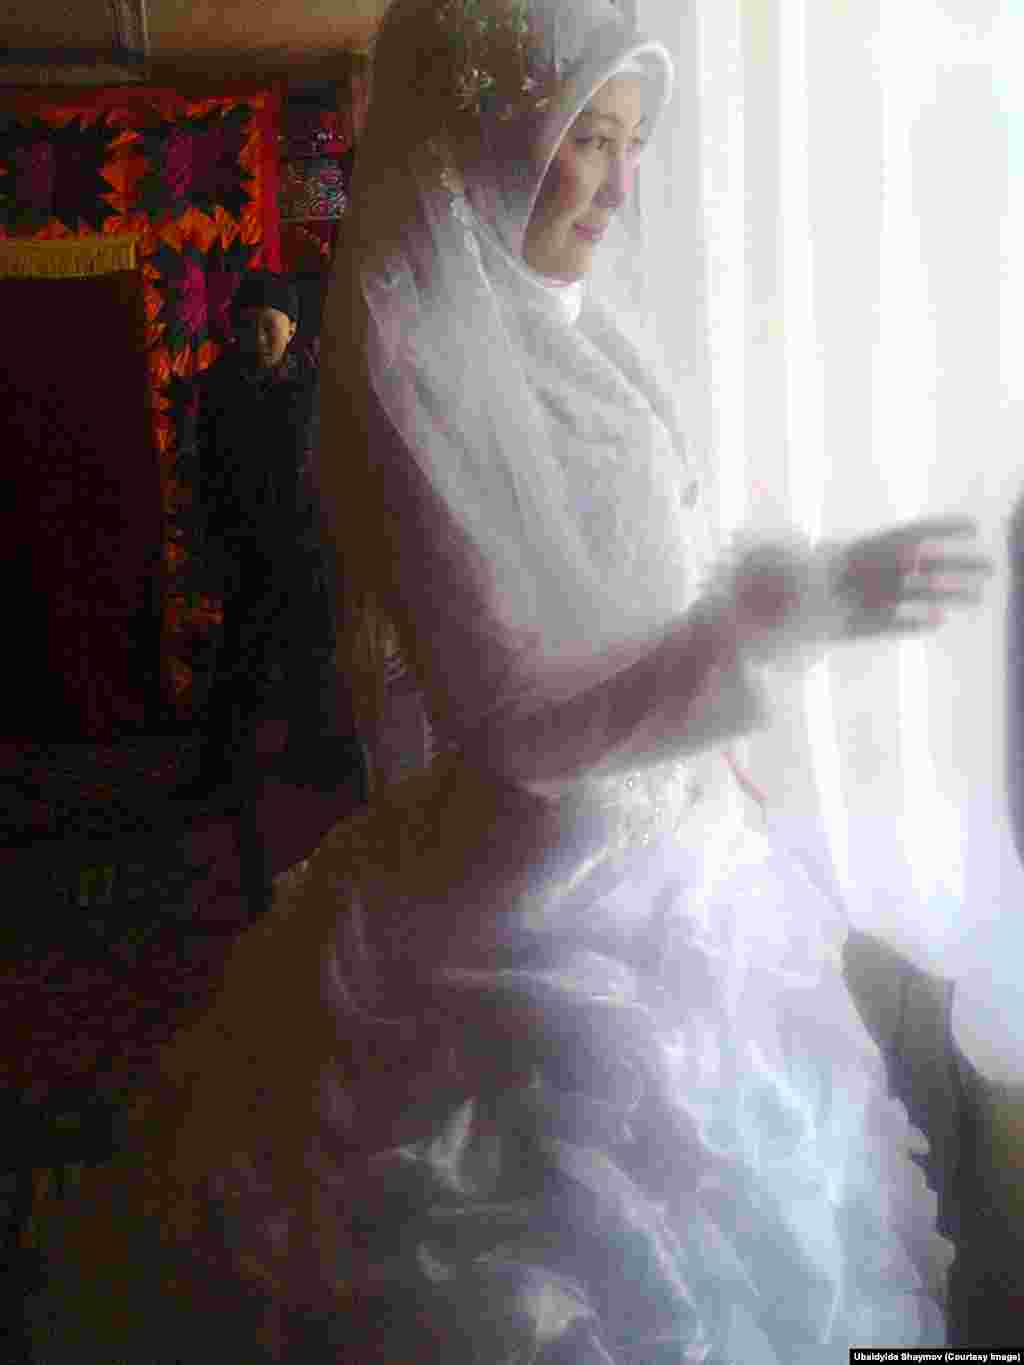 Palmira, a language teacher, looks out of a window before her wedding.